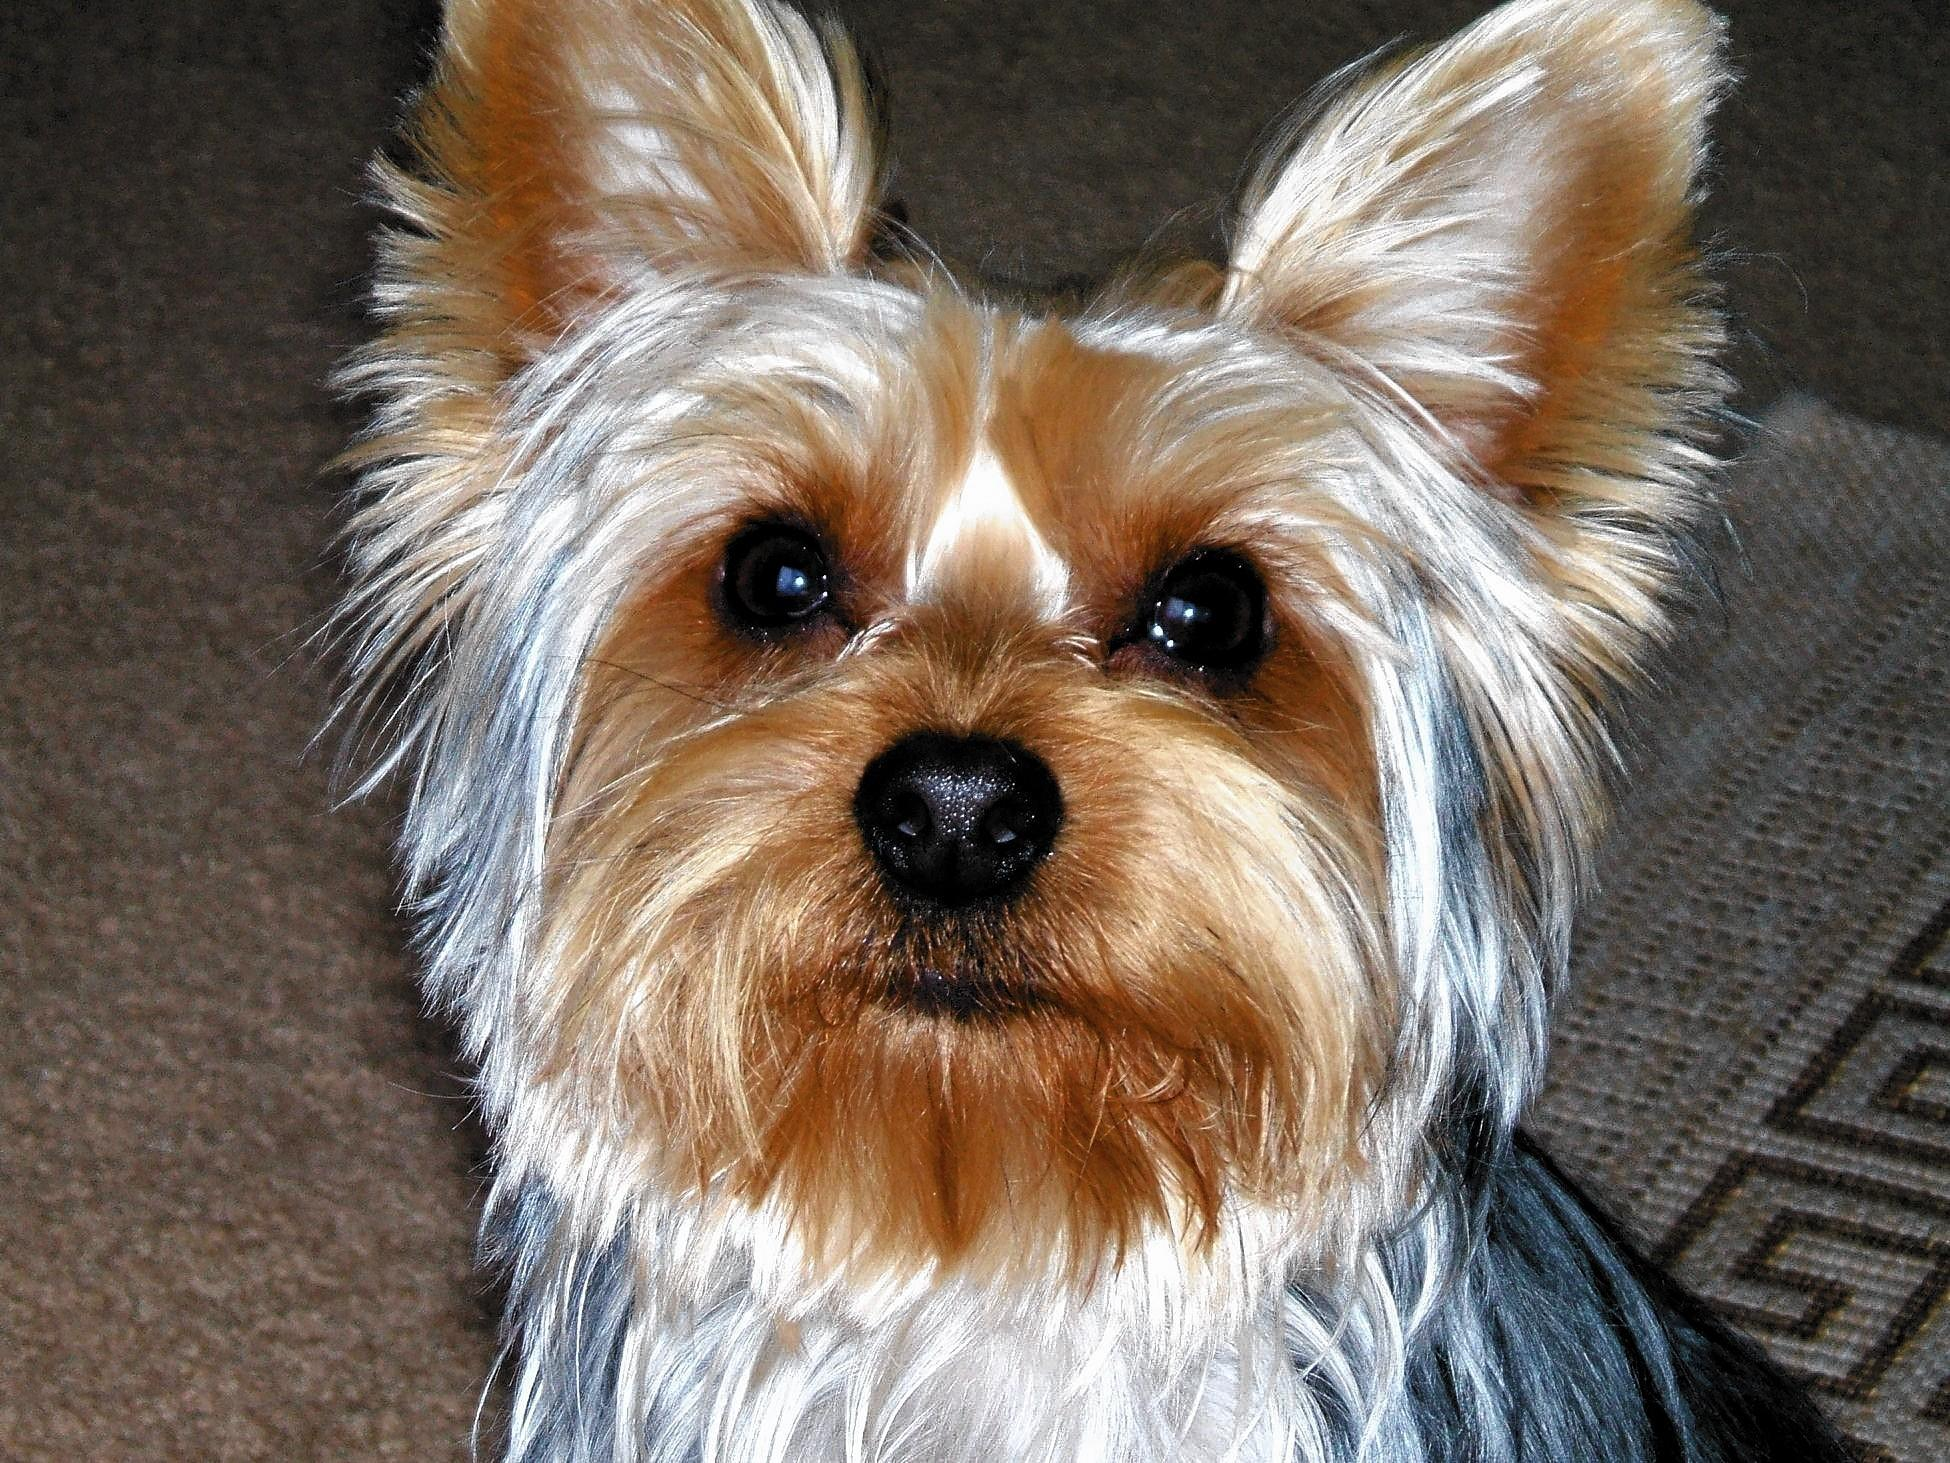 Benji, a 4 year old Yorkshire Terrier, owned and loved by Joseph Belott, 53, of East Greenville.